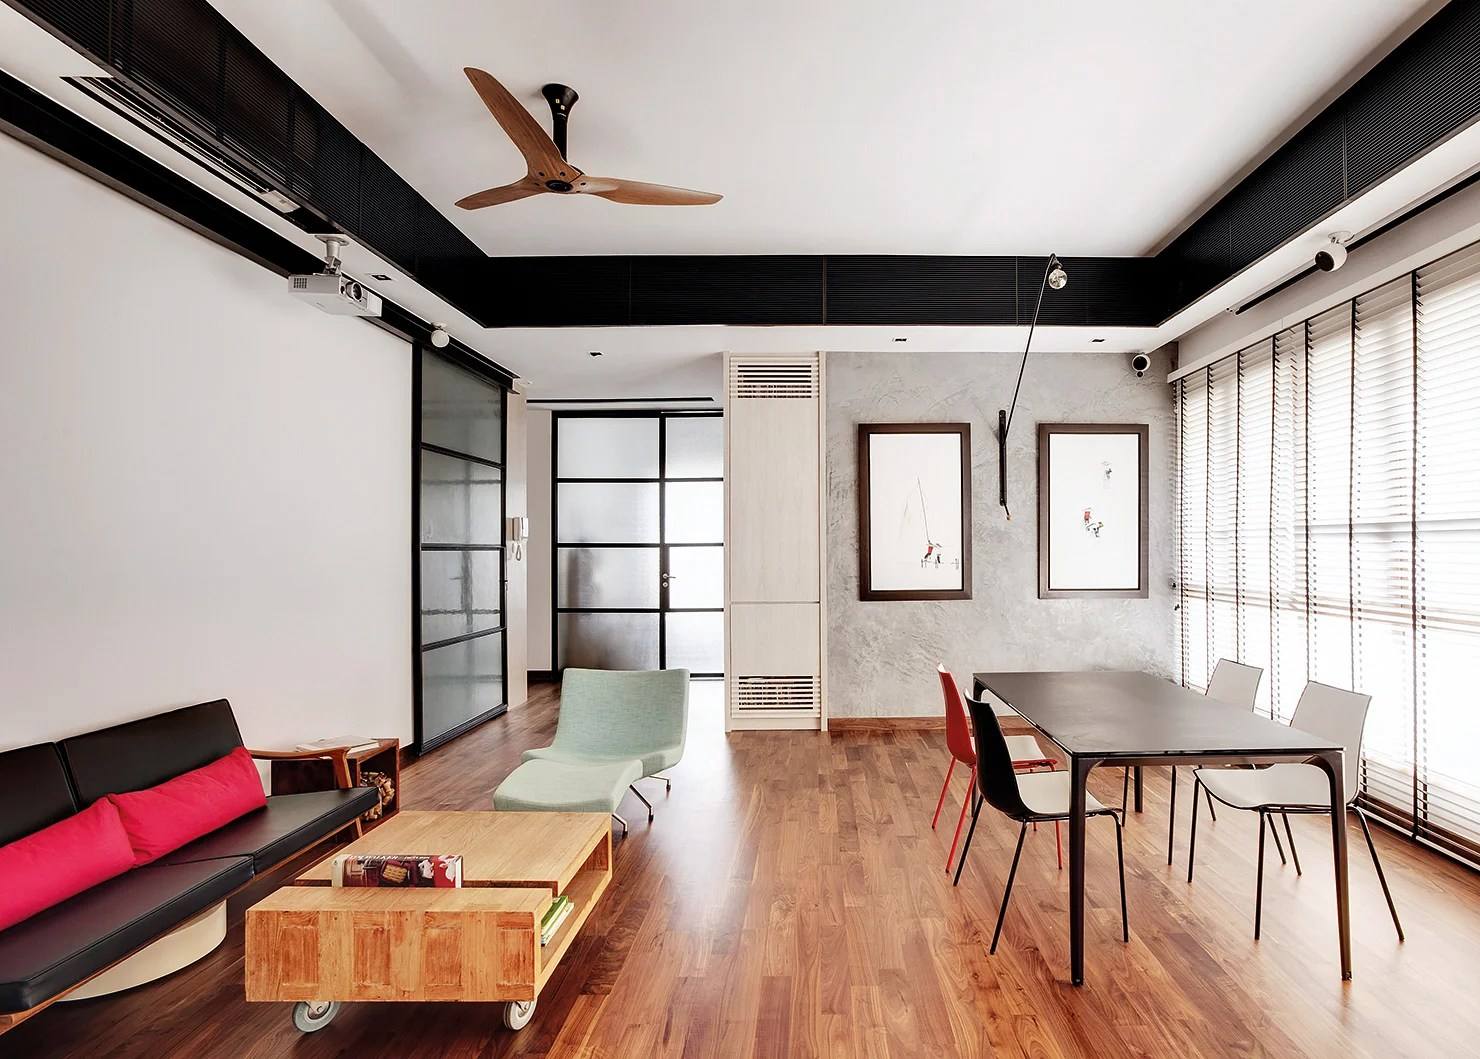 Black Ceiling Fan Stylish Ceiling Fans For Modern Spaces | Home & Decor